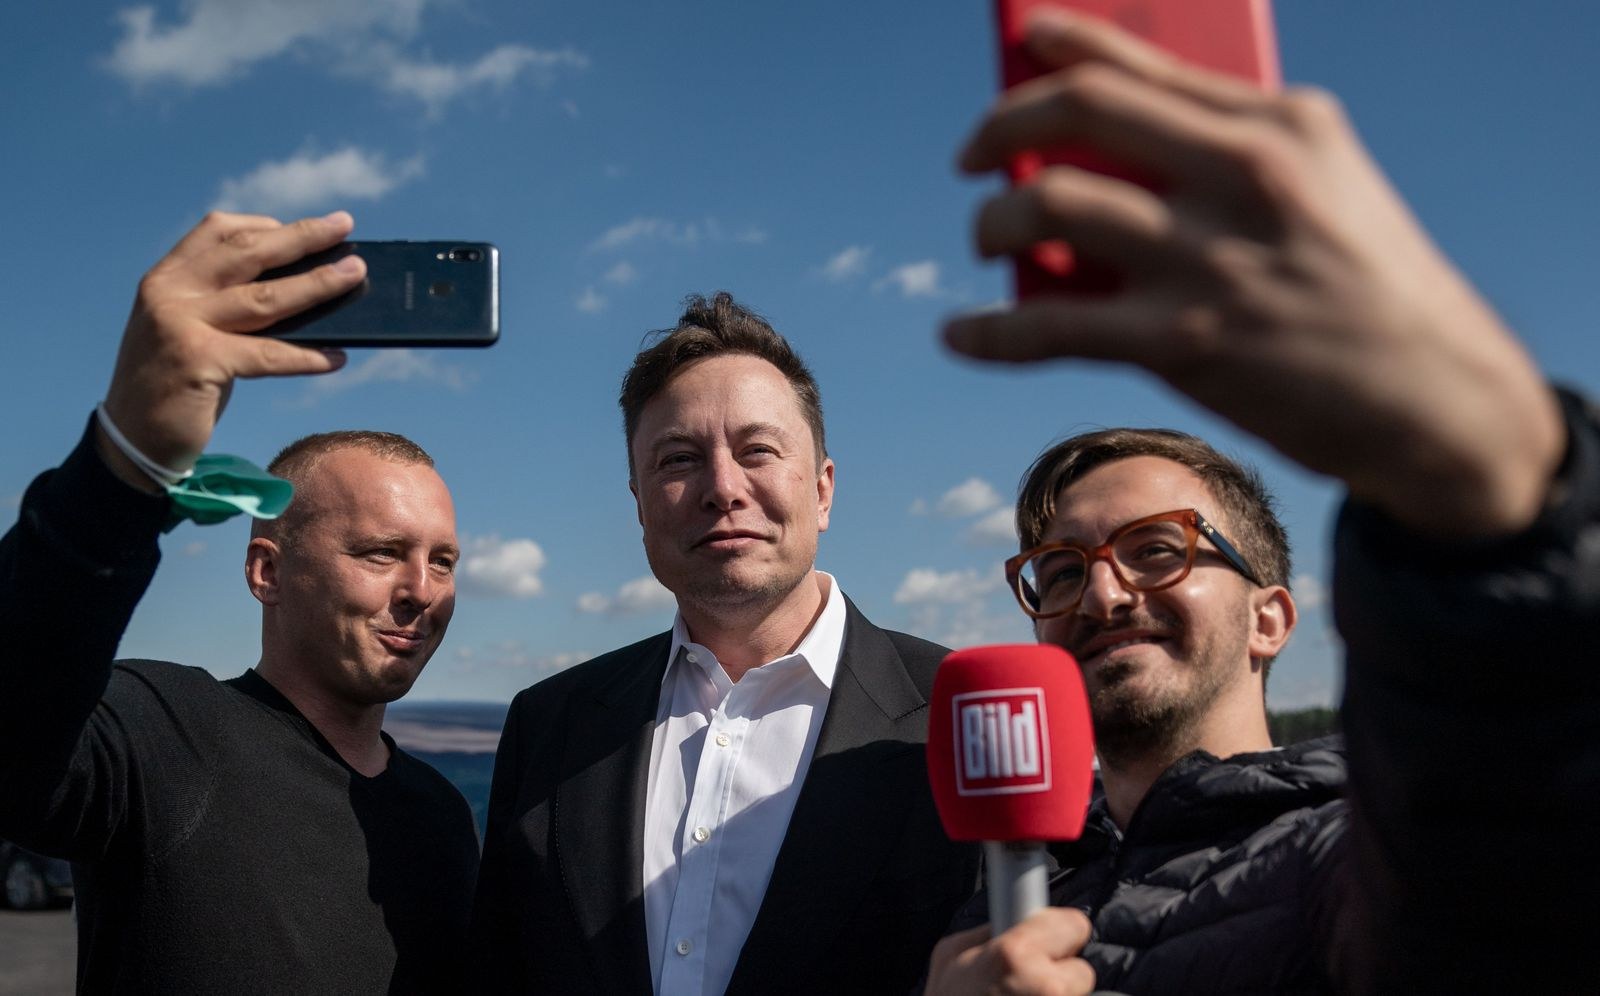 Elon Musk in Germany, Gruenheide - 03 Sep 2020